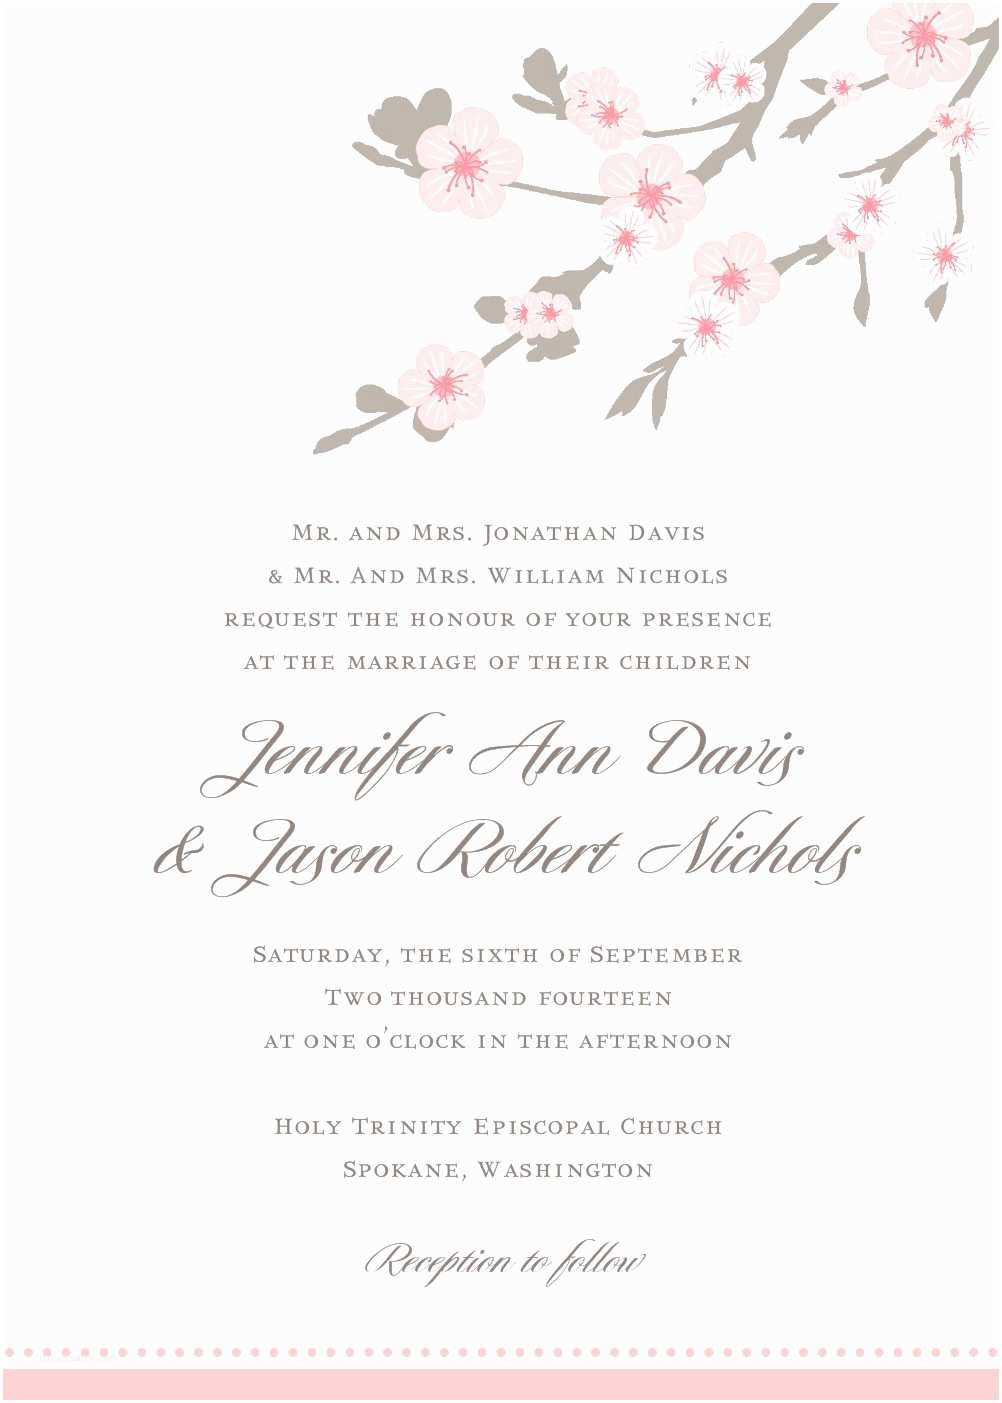 Wedding Invitation Designs Free Download Shop Invitation Templates